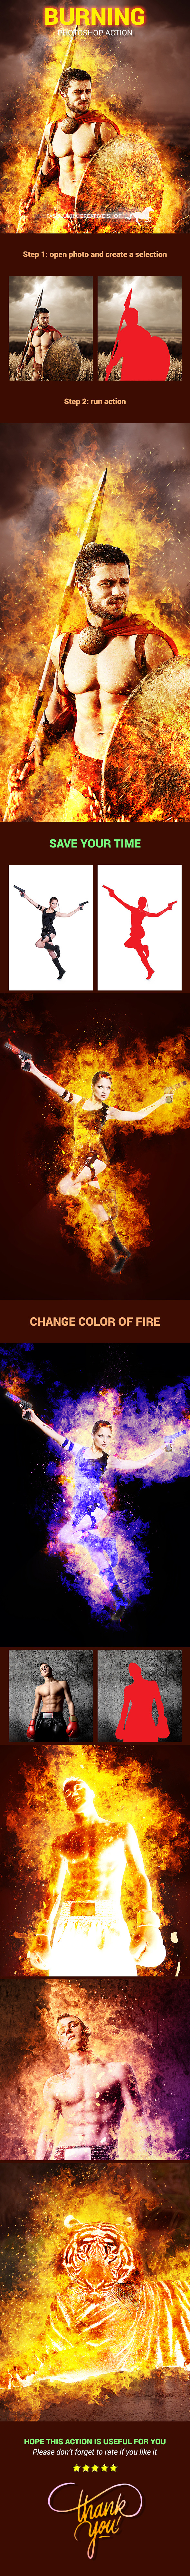 Burning - Photo Effects Actions